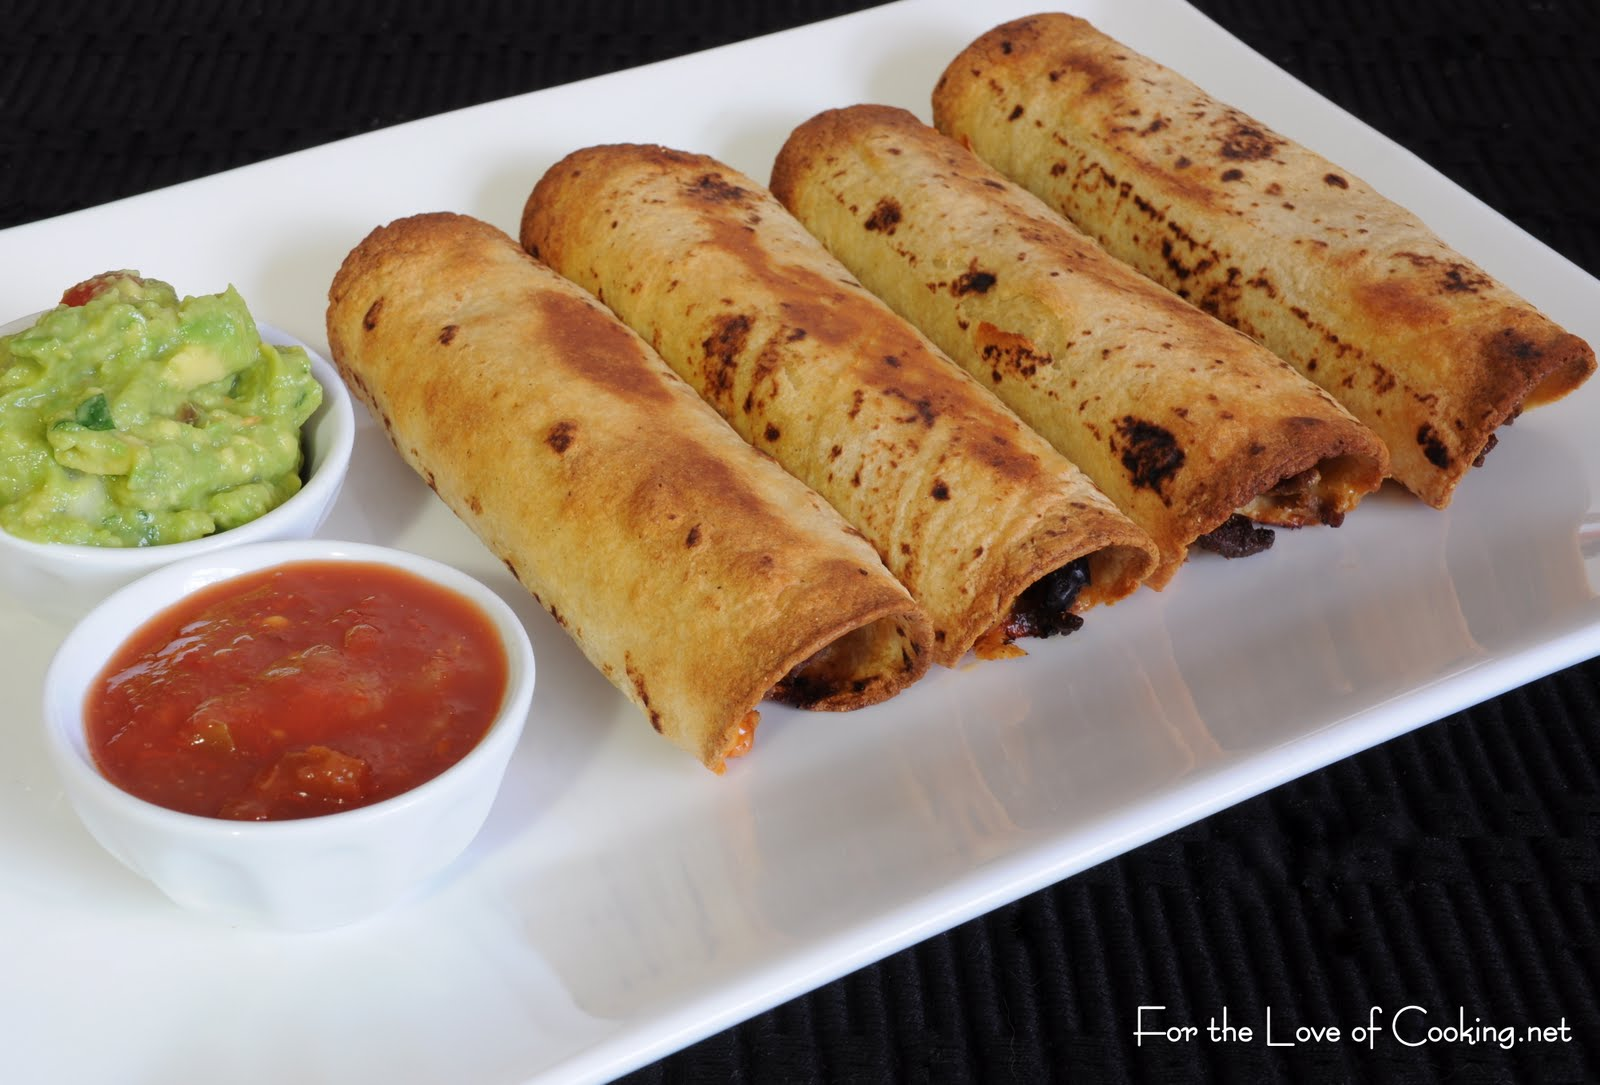 Ground beef black bean and cheddar cheese taquitos for for Different meal ideas for ground beef